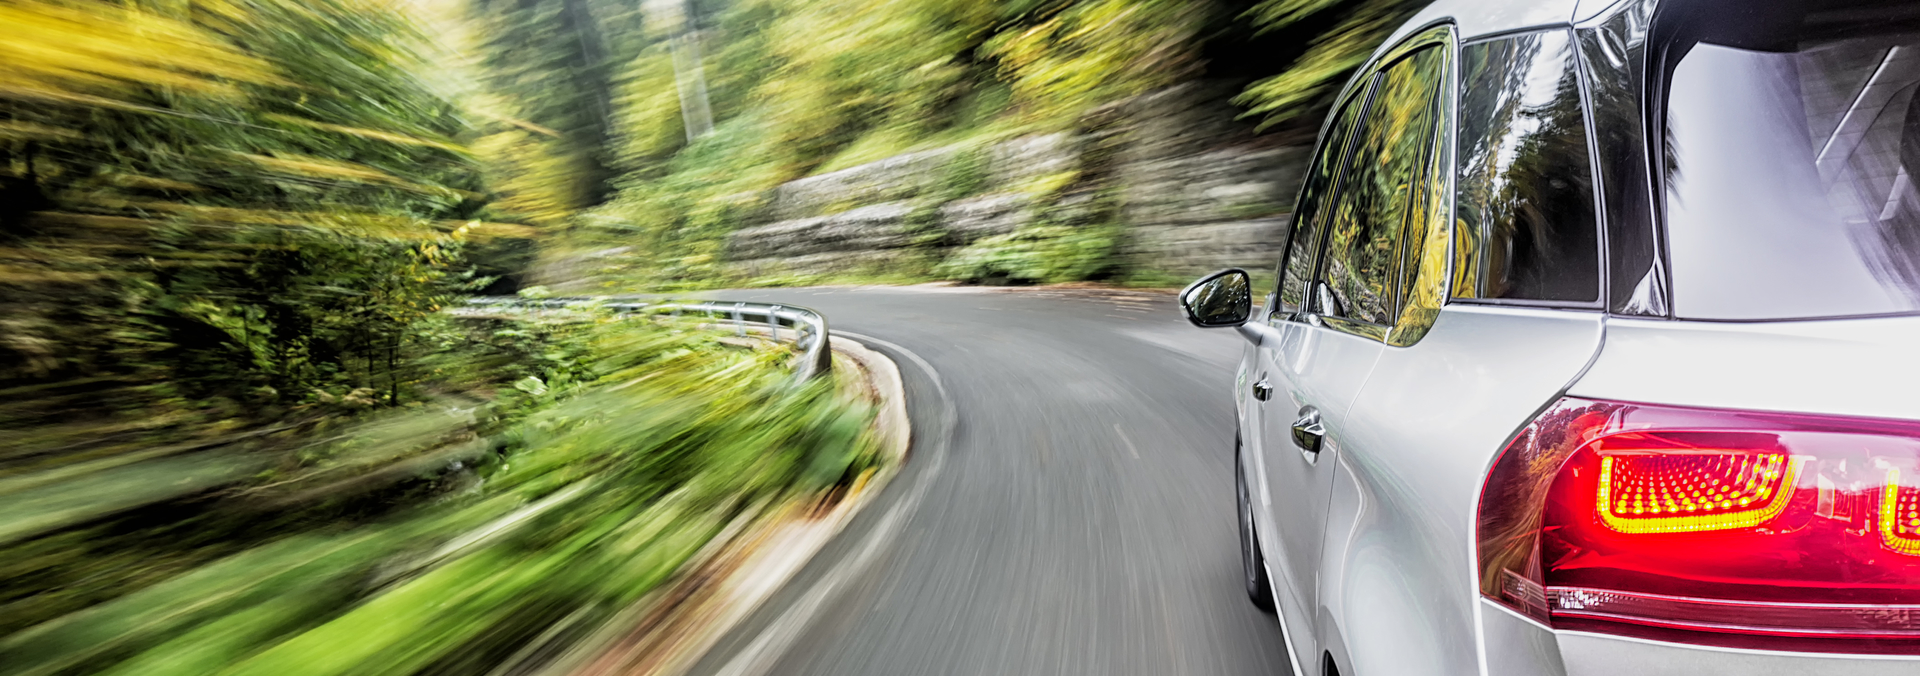 Navigating the Auto Loan Highway at Credit Concepts